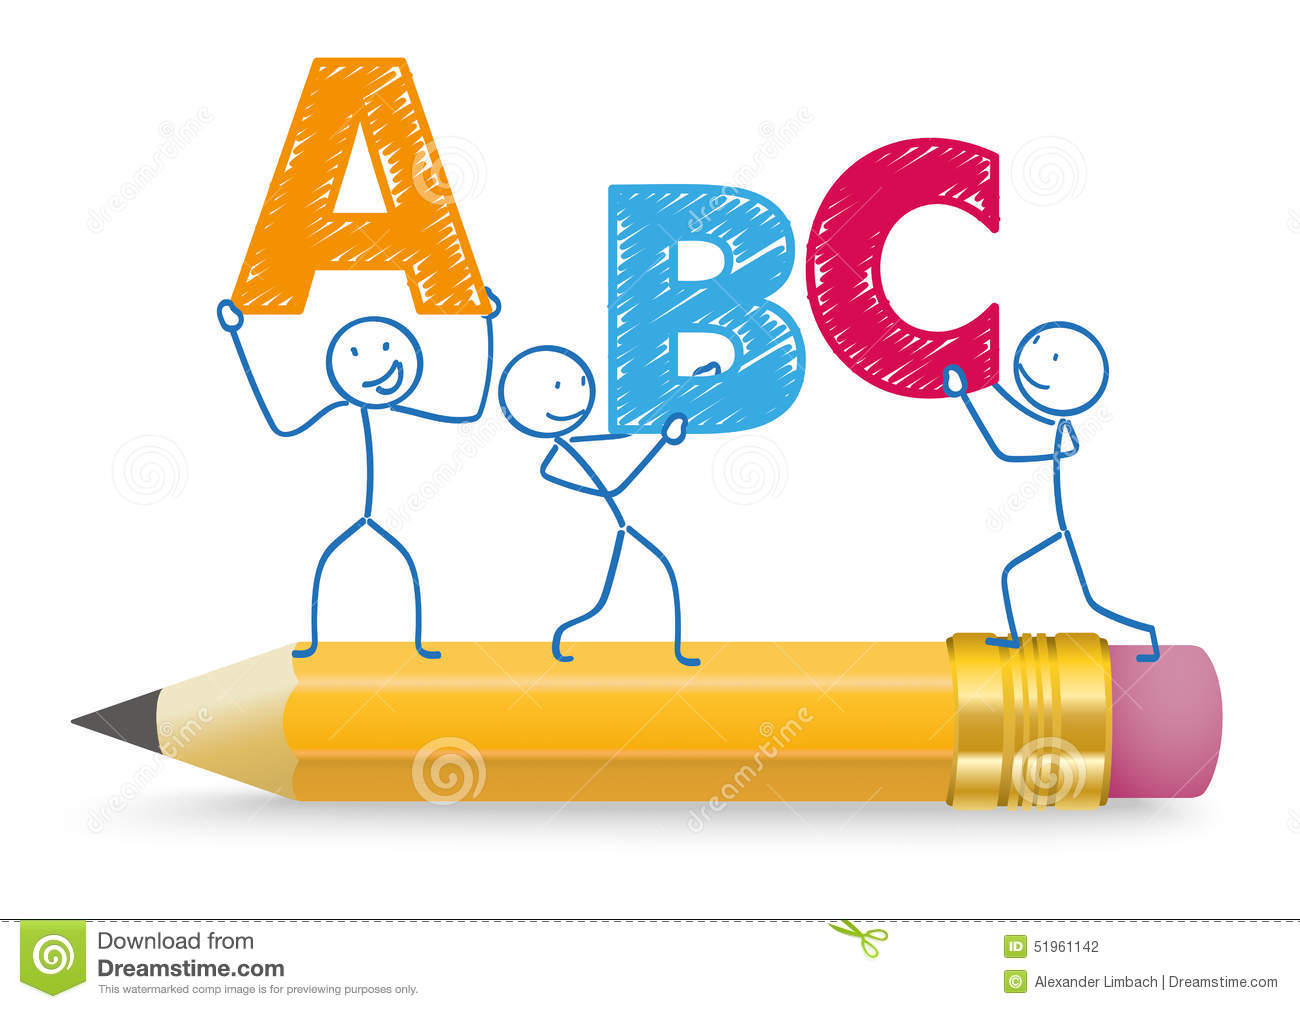 Colour Pens 3812115 likewise Stock Vector Lucky Horseshoe Cartoon Icon Sketch Fast Pencil Hand Drawing Illustration In Funny Doodle Style also Livescribe Paper Tablet Makes The Pen As Mighty As The Mouse in addition Doodle 66289 further Forget Crayons Multicolour Pen Lets Pick Colour Draw 16 Million Shades. on scribble drawing pen